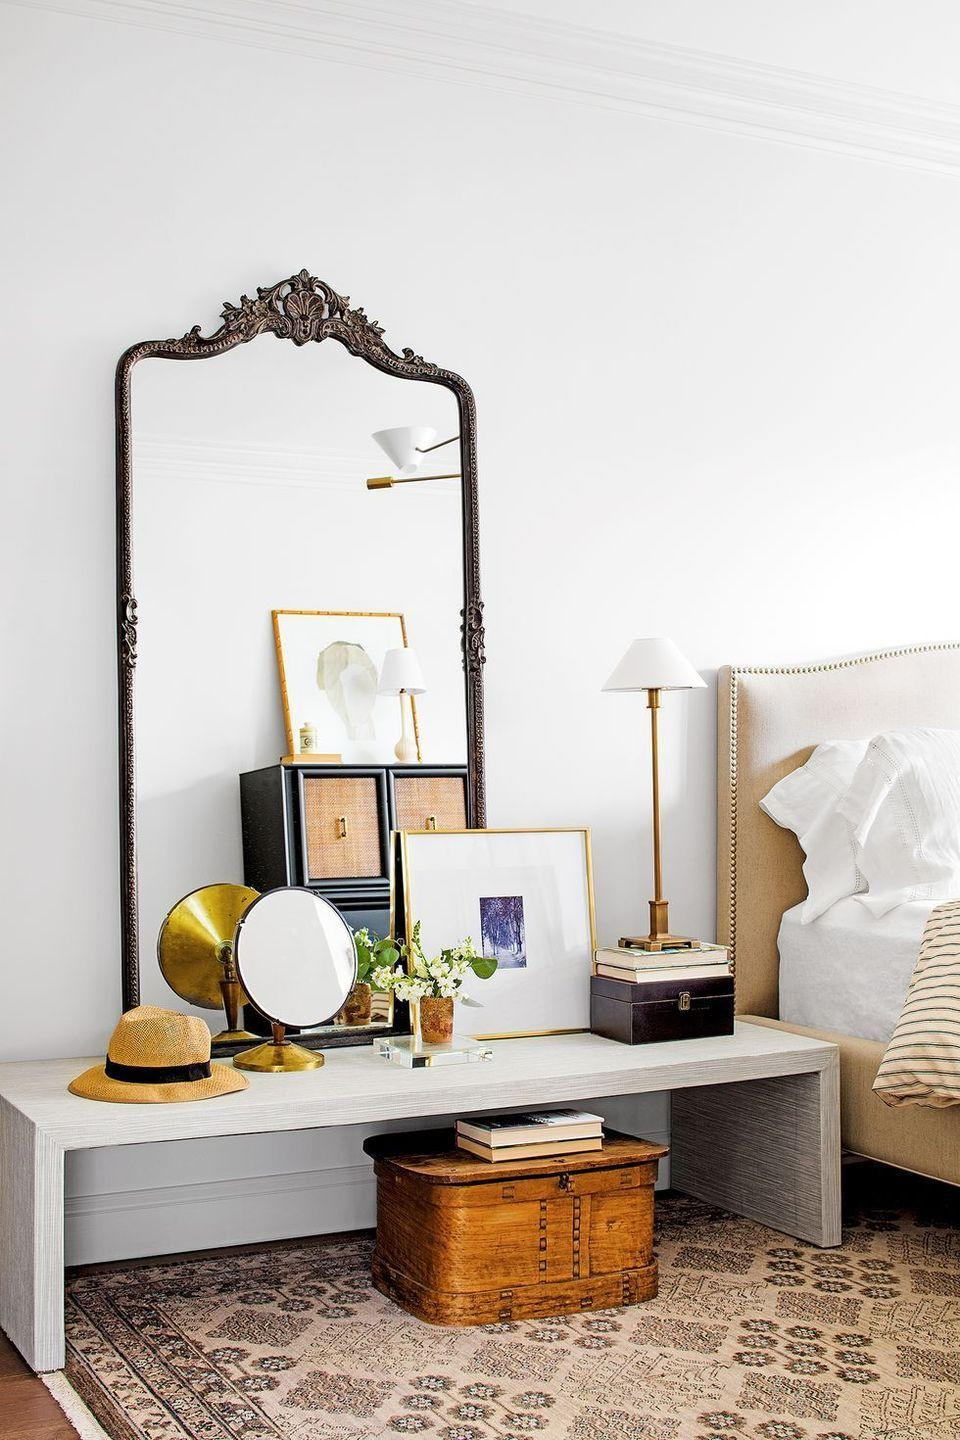 <p>Steal a trick from design pros and let a low-profile console table serve as a surface for propping oversized mirrors and framed art against your bedroom wall. Finish the look with a small floral arrangement and lamp.<br></p>